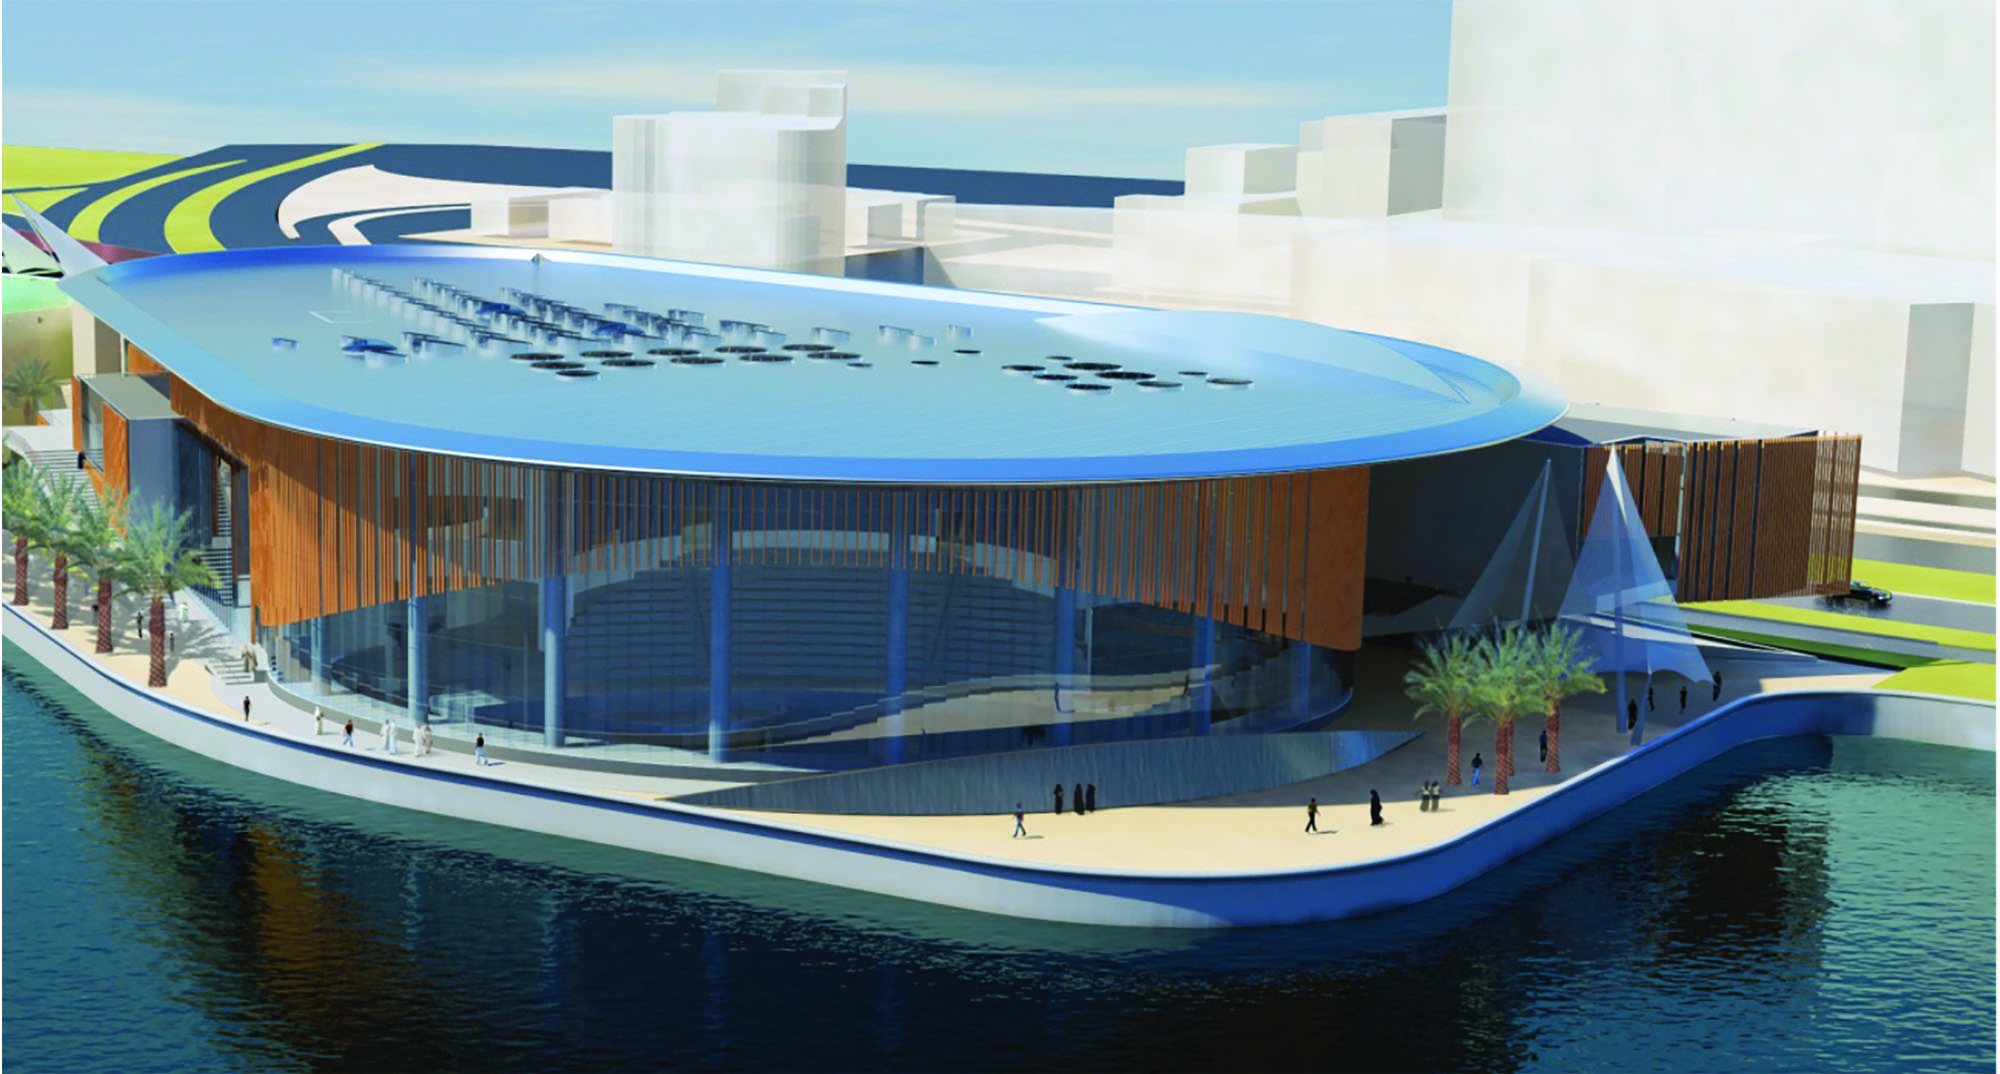 The Scientific Center of Kuwait Expansion Program